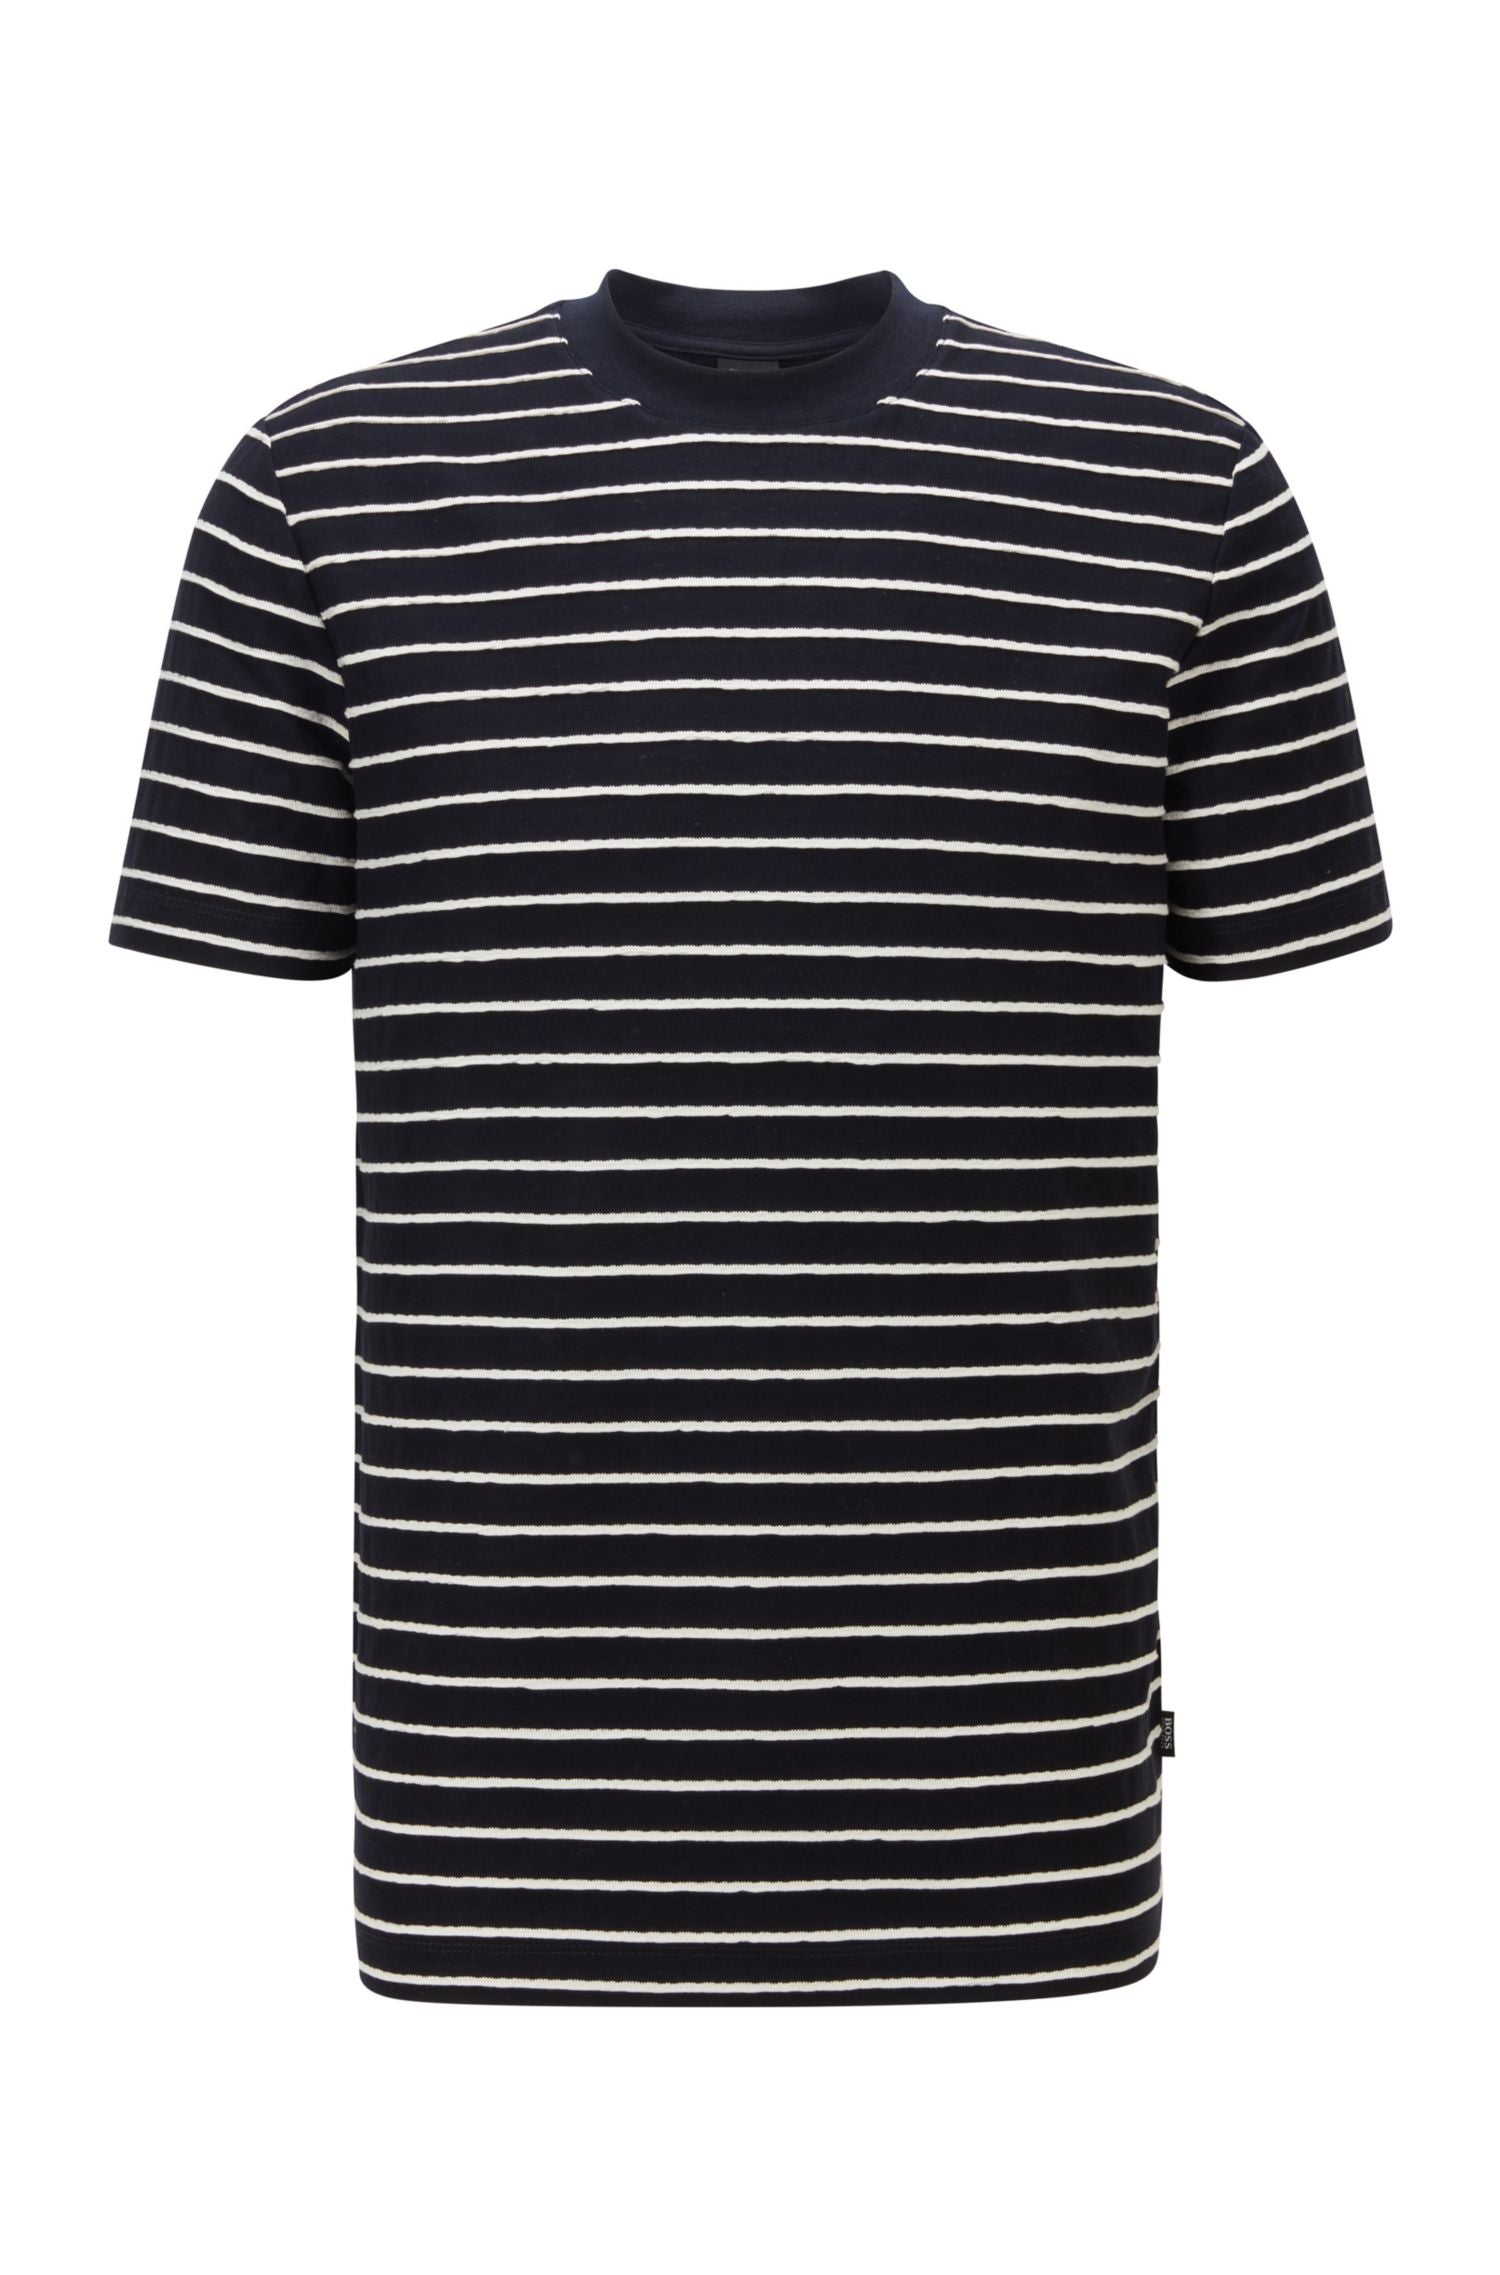 Hugo Boss - TIBURT 223 Dark Blue Regular-Fit Cotton-Linen T-Shirt with Horizontal Stripes 50450786